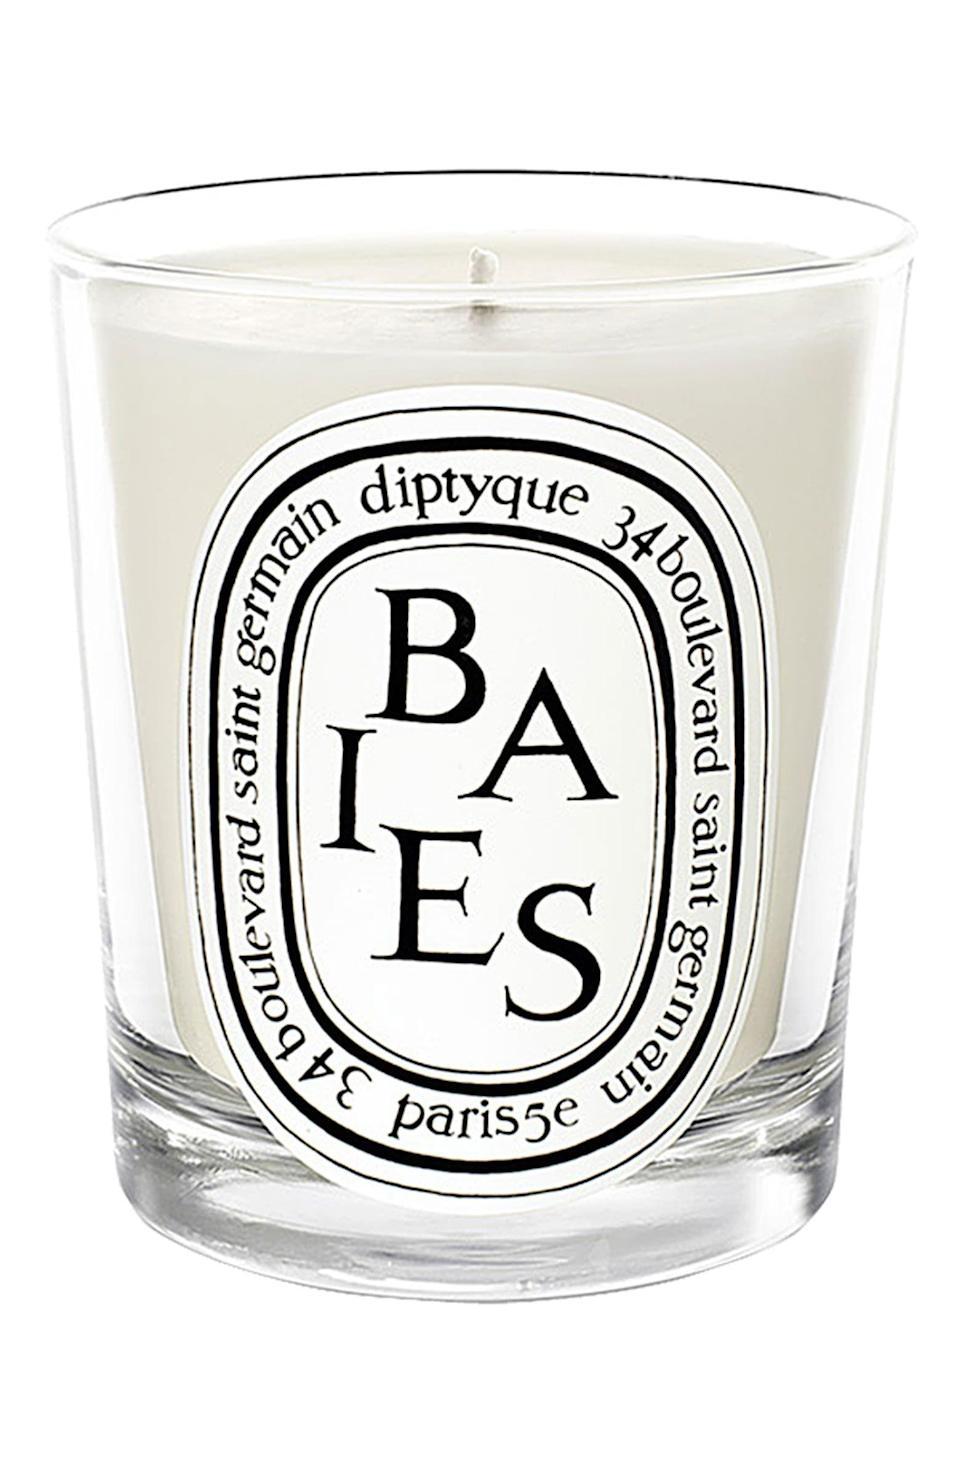 """<p><strong>Diptyque</strong></p><p>nordstrom.com</p><p><strong>$36.00</strong></p><p><a href=""""https://go.redirectingat.com?id=74968X1596630&url=https%3A%2F%2Fshop.nordstrom.com%2Fs%2Fdiptyque-baies-berries-candle%2F3227984%2Ffull&sref=https%3A%2F%2Fwww.townandcountrymag.com%2Fstyle%2Fg2095%2Fmothers-day-gift-ideas%2F"""" rel=""""nofollow noopener"""" target=""""_blank"""" data-ylk=""""slk:Shop Now"""" class=""""link rapid-noclick-resp"""">Shop Now</a></p><p>Diptyque's candles are always a good bet, but their berry rendition is spectacular. She'll love it so much she will want to ration it.</p>"""